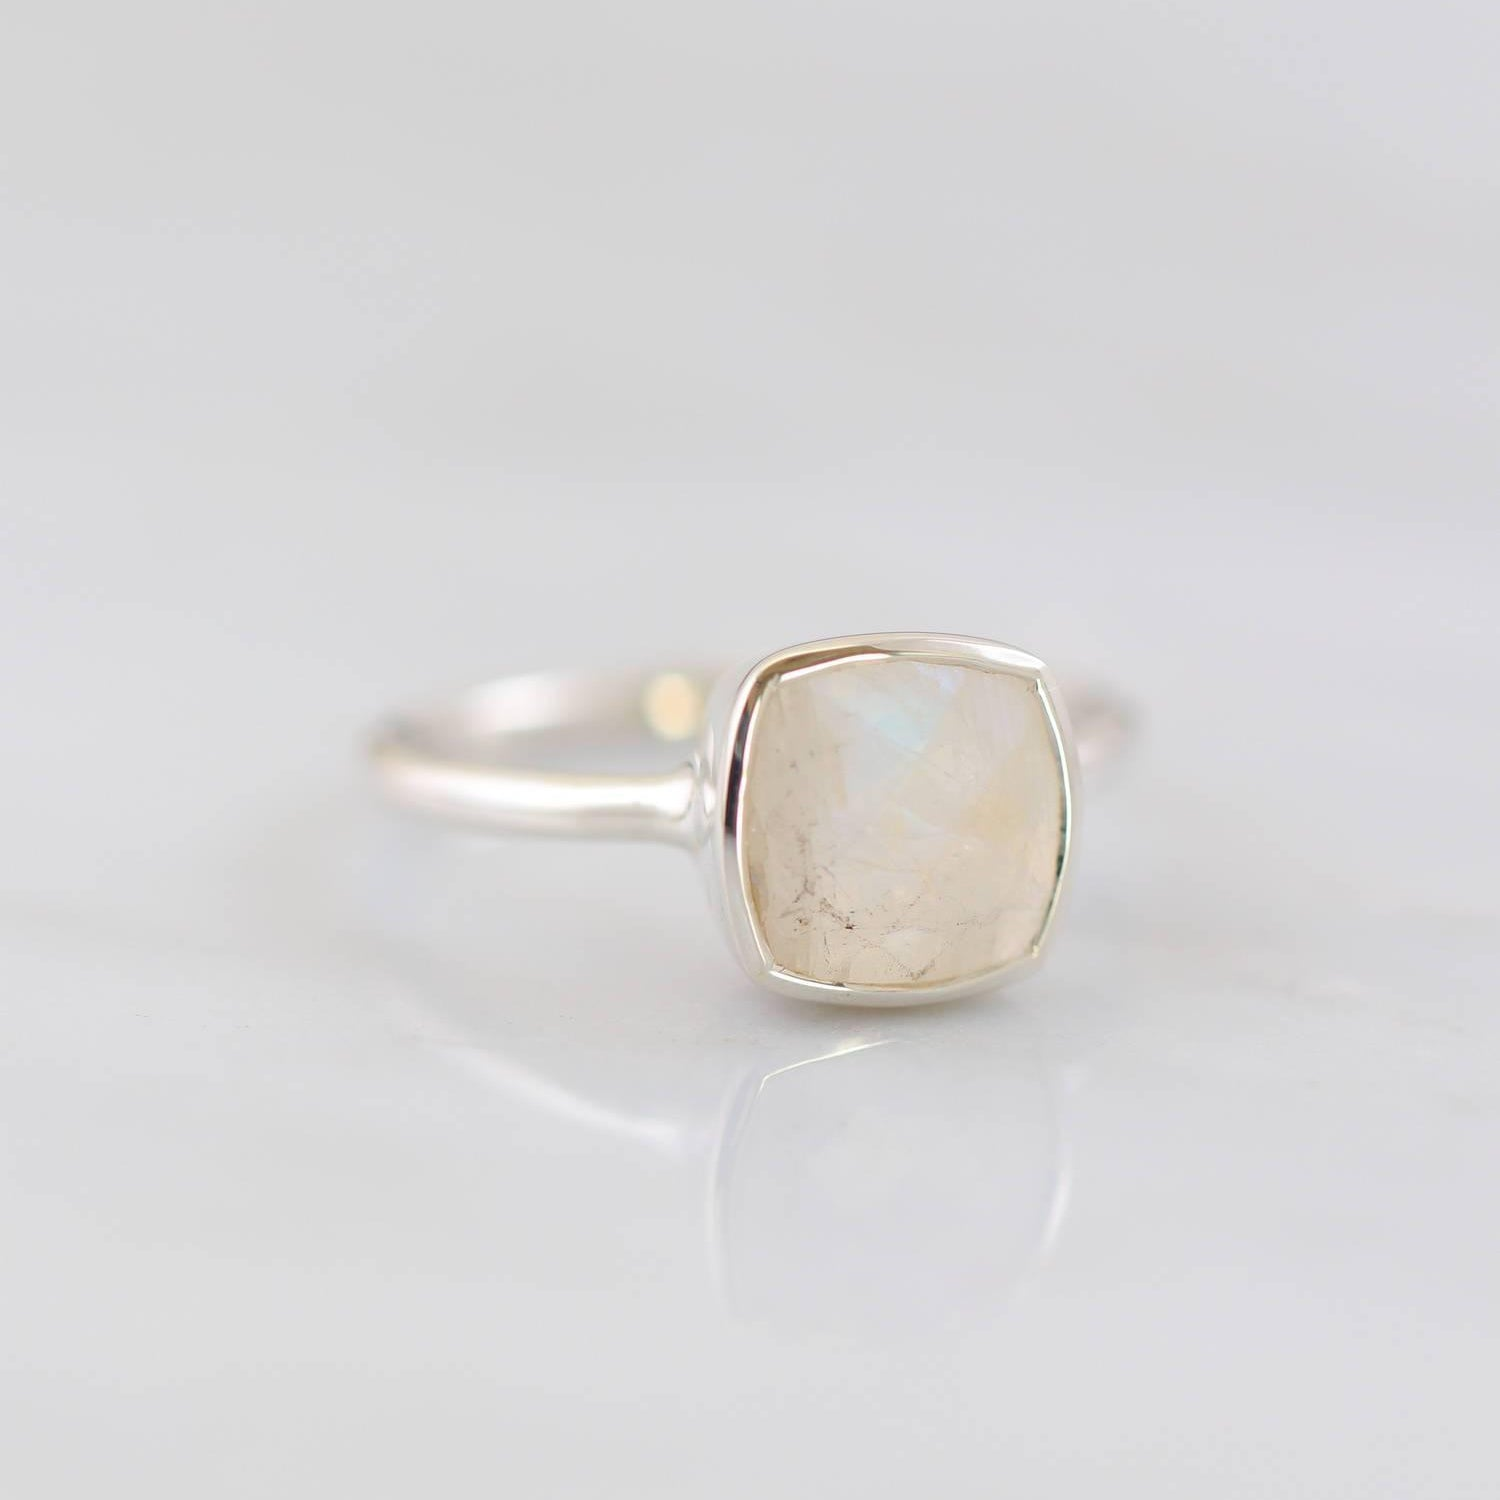 Moonstone Ring, Rainbow moonstone ring, Square ring, June Birthstone ring, Sterling silver Jewelry, Bezel set ring, Valentine's Gift for her